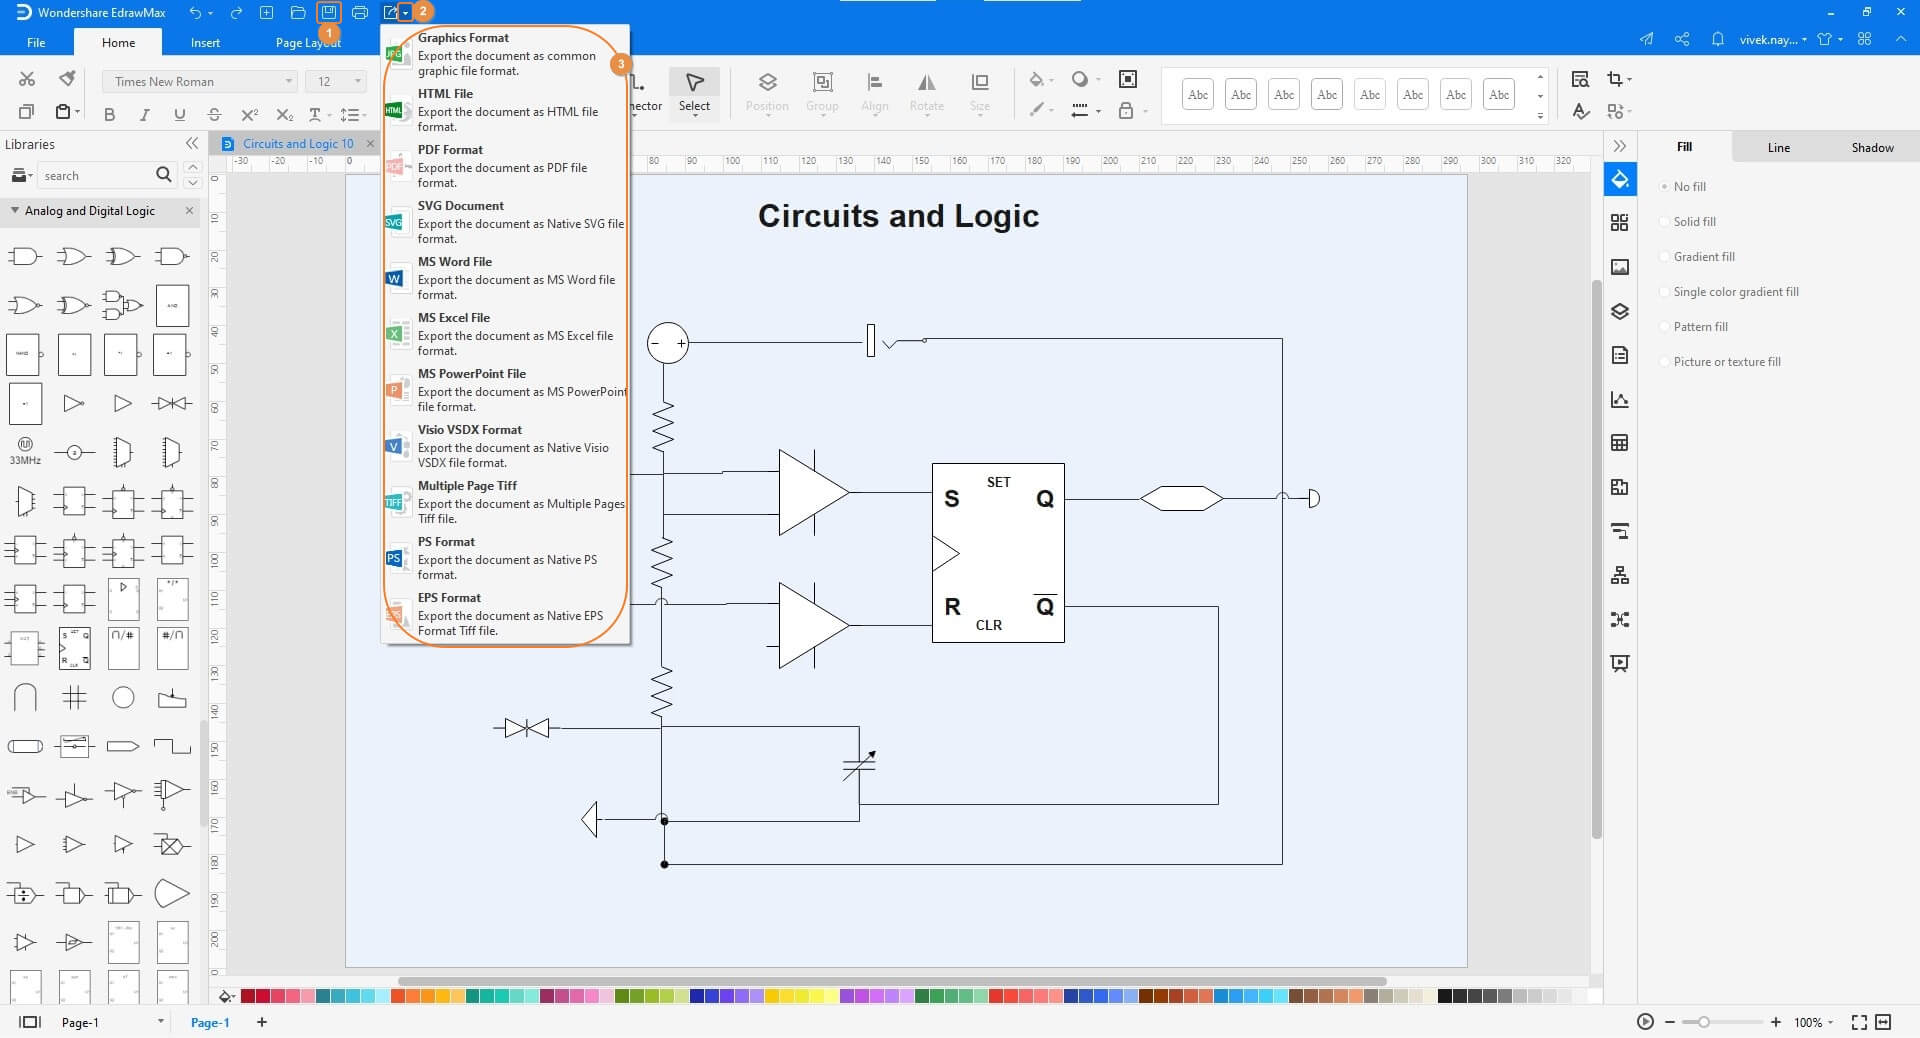 Save the Logic Diagram and Export